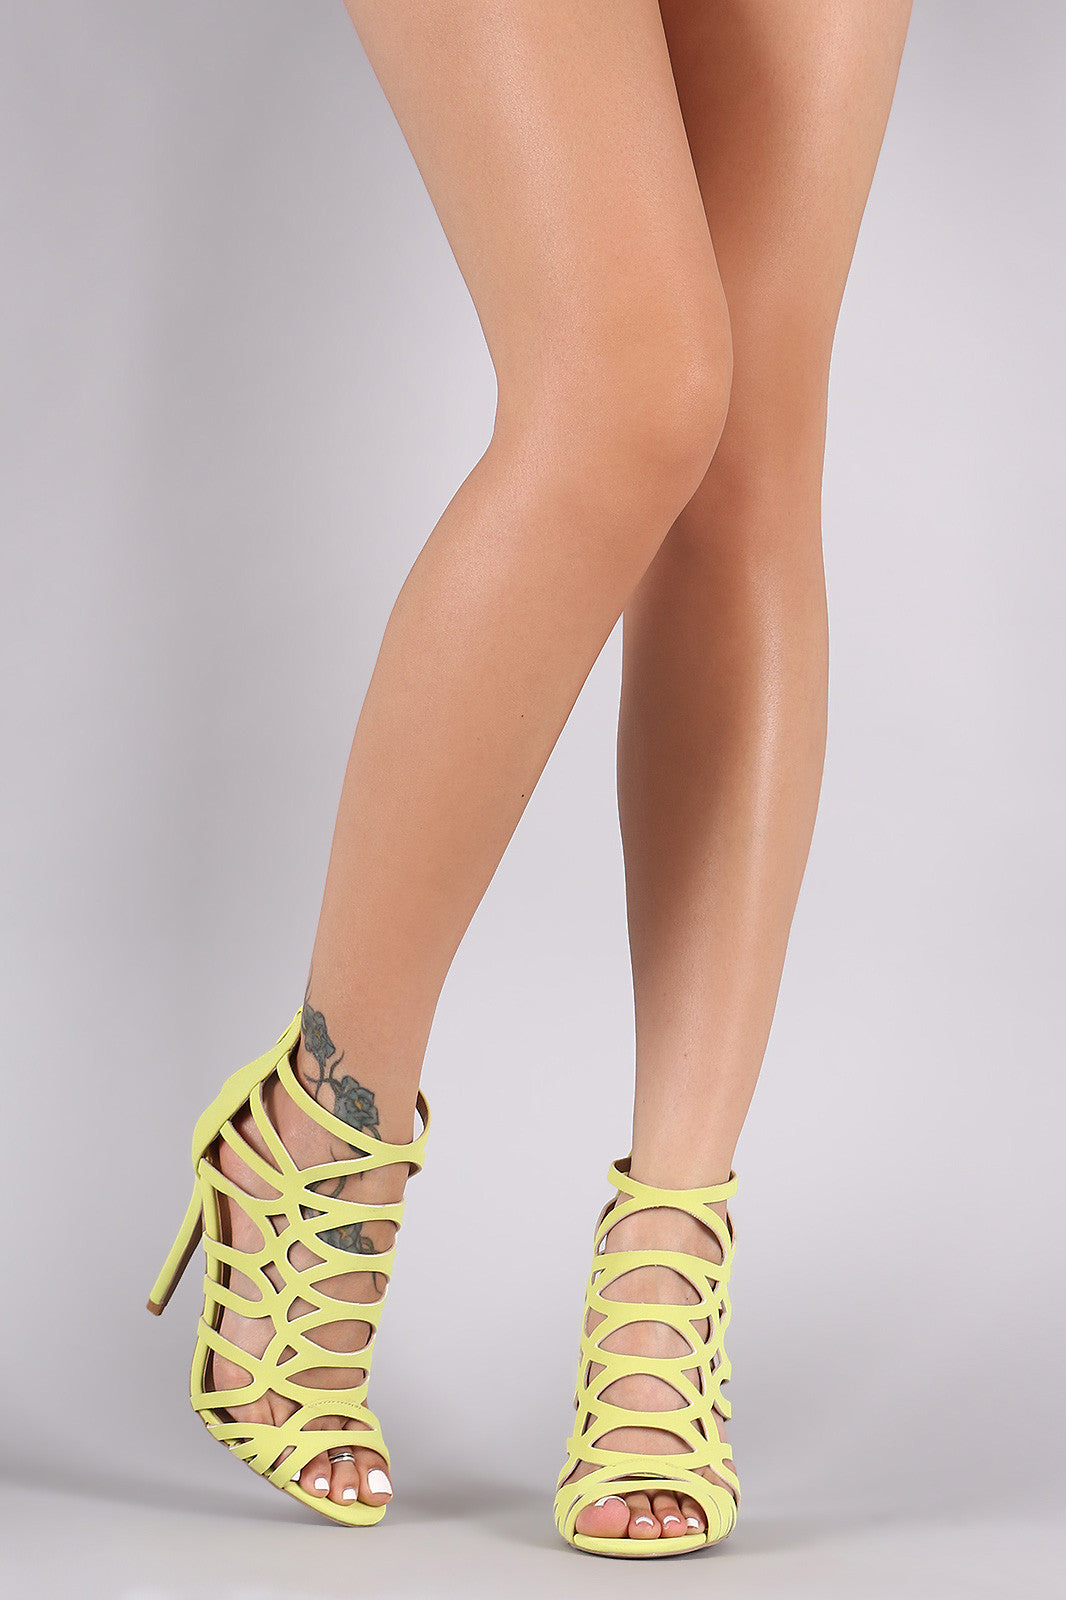 Qupid Nubuck Strappy Caged Stiletto Heel - Thick 'N' Curvy Shop - 3